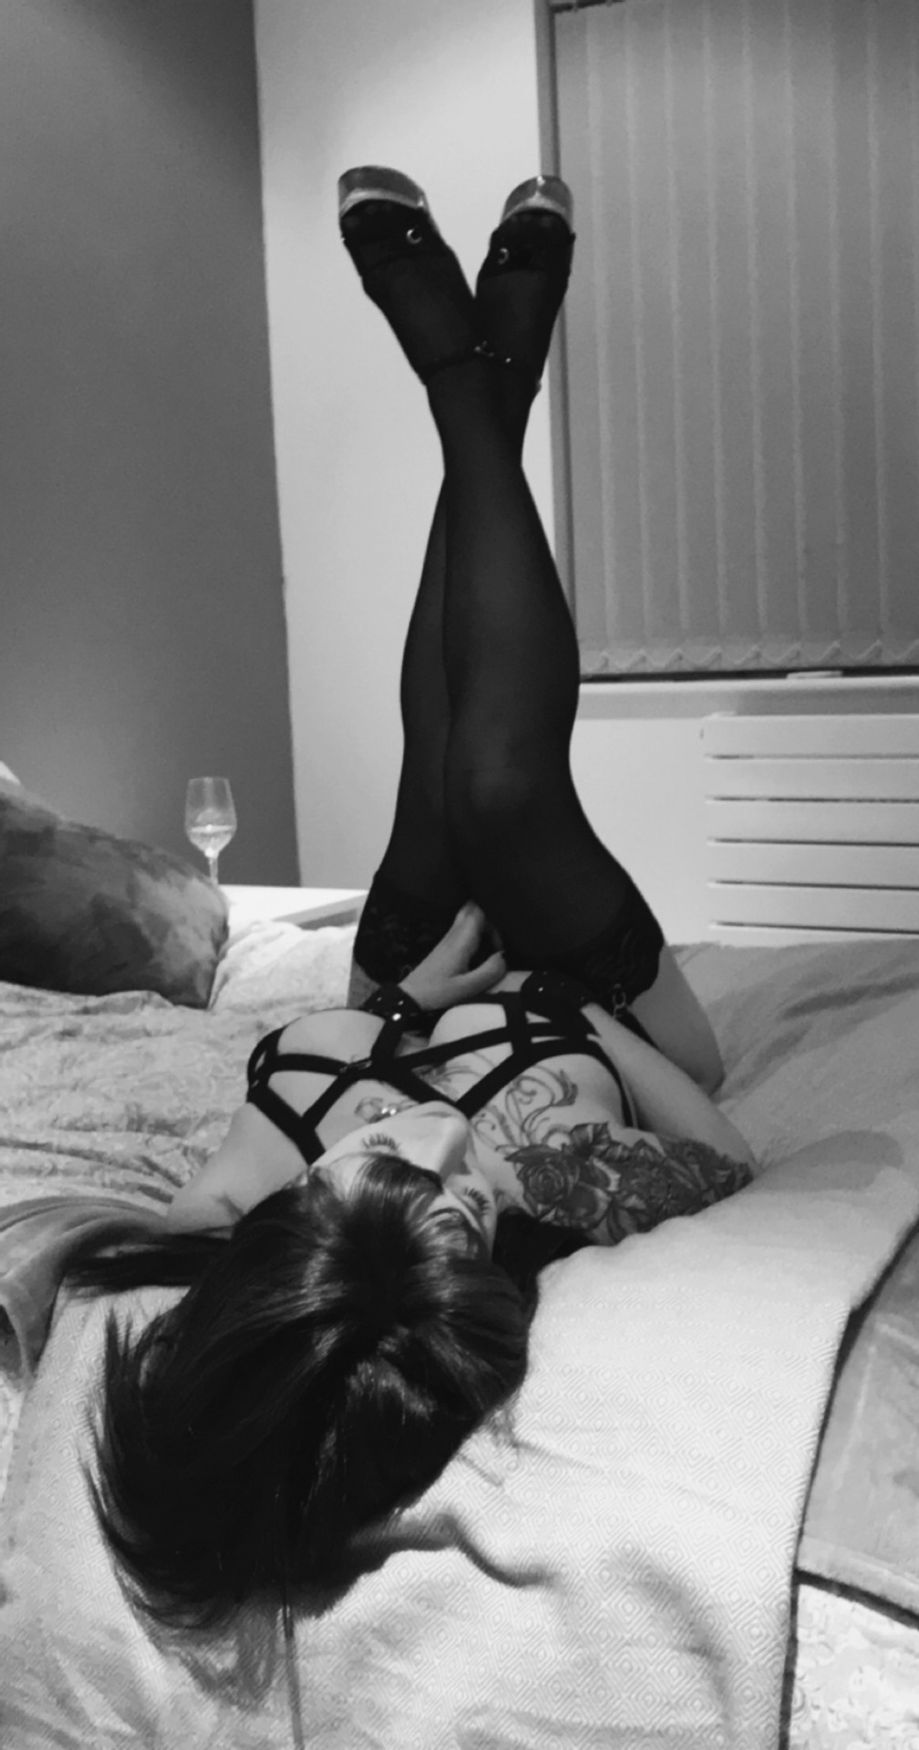 Welcome, To my room of pleasure, friendship, giggles and no limits, we can talk about your day o ...